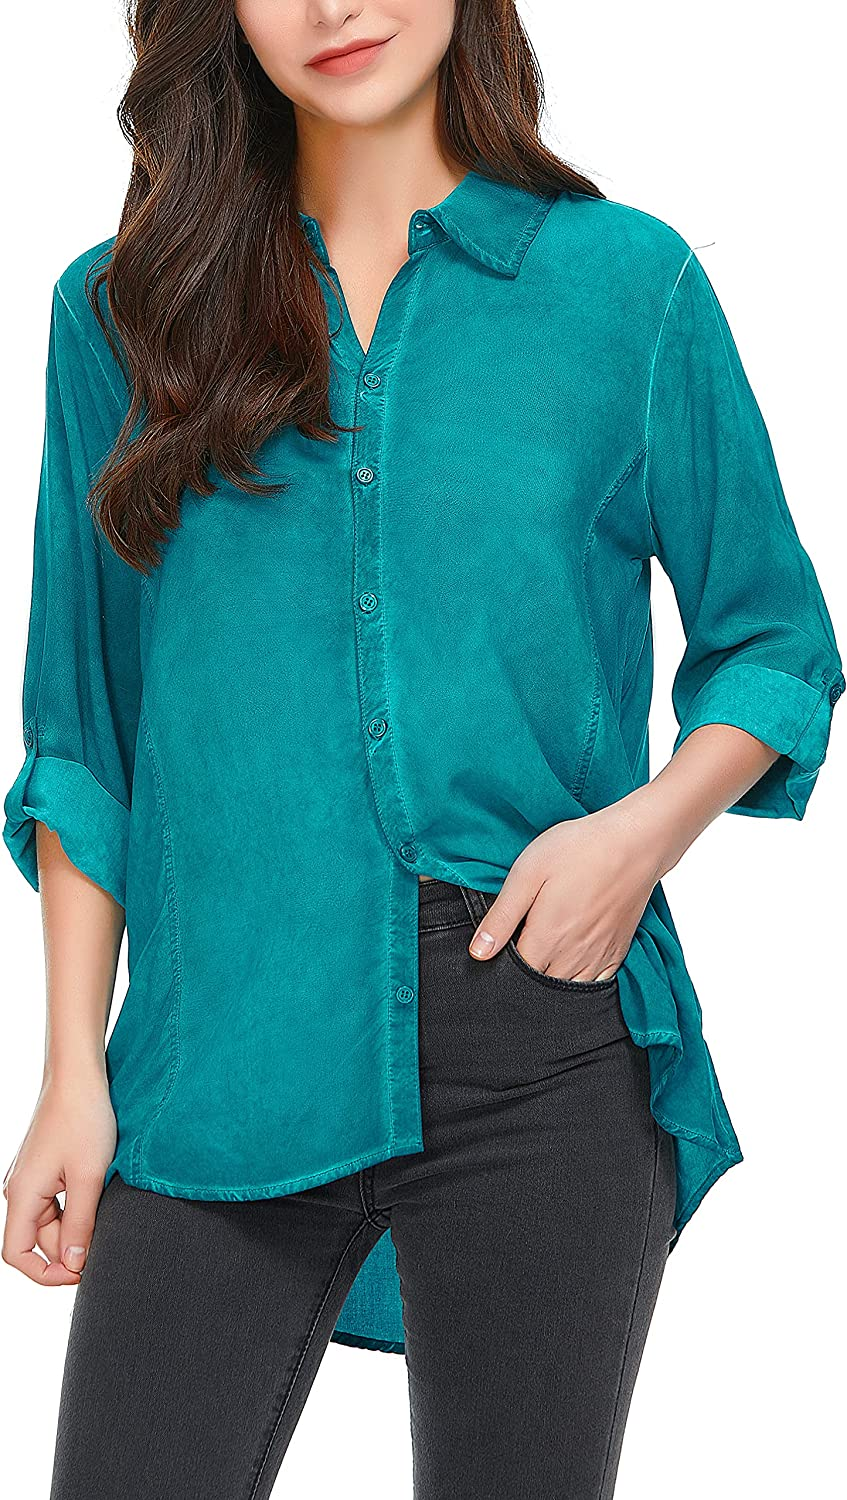 Welsters Womens Blouses 3/4 Sleeve Shirts for Summer Casual Button Down Shirts Button Up Shirts S-3XL